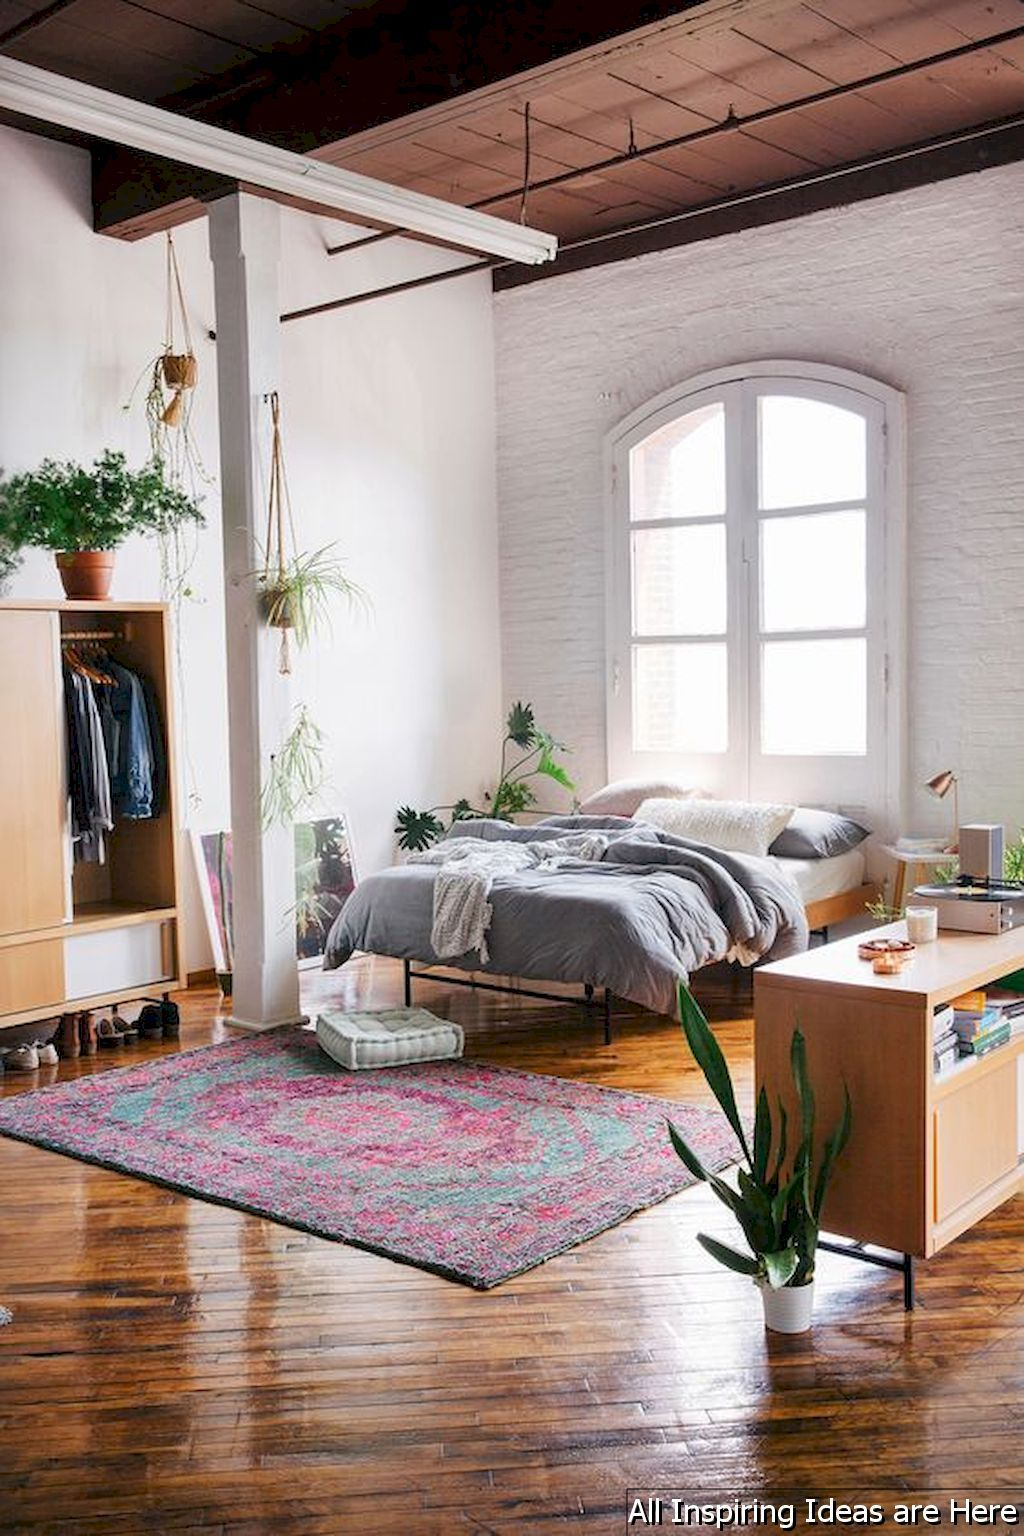 62 Nice Loft Bedroom Design and Decor Ideas | Pinterest | Wg zimmer ...